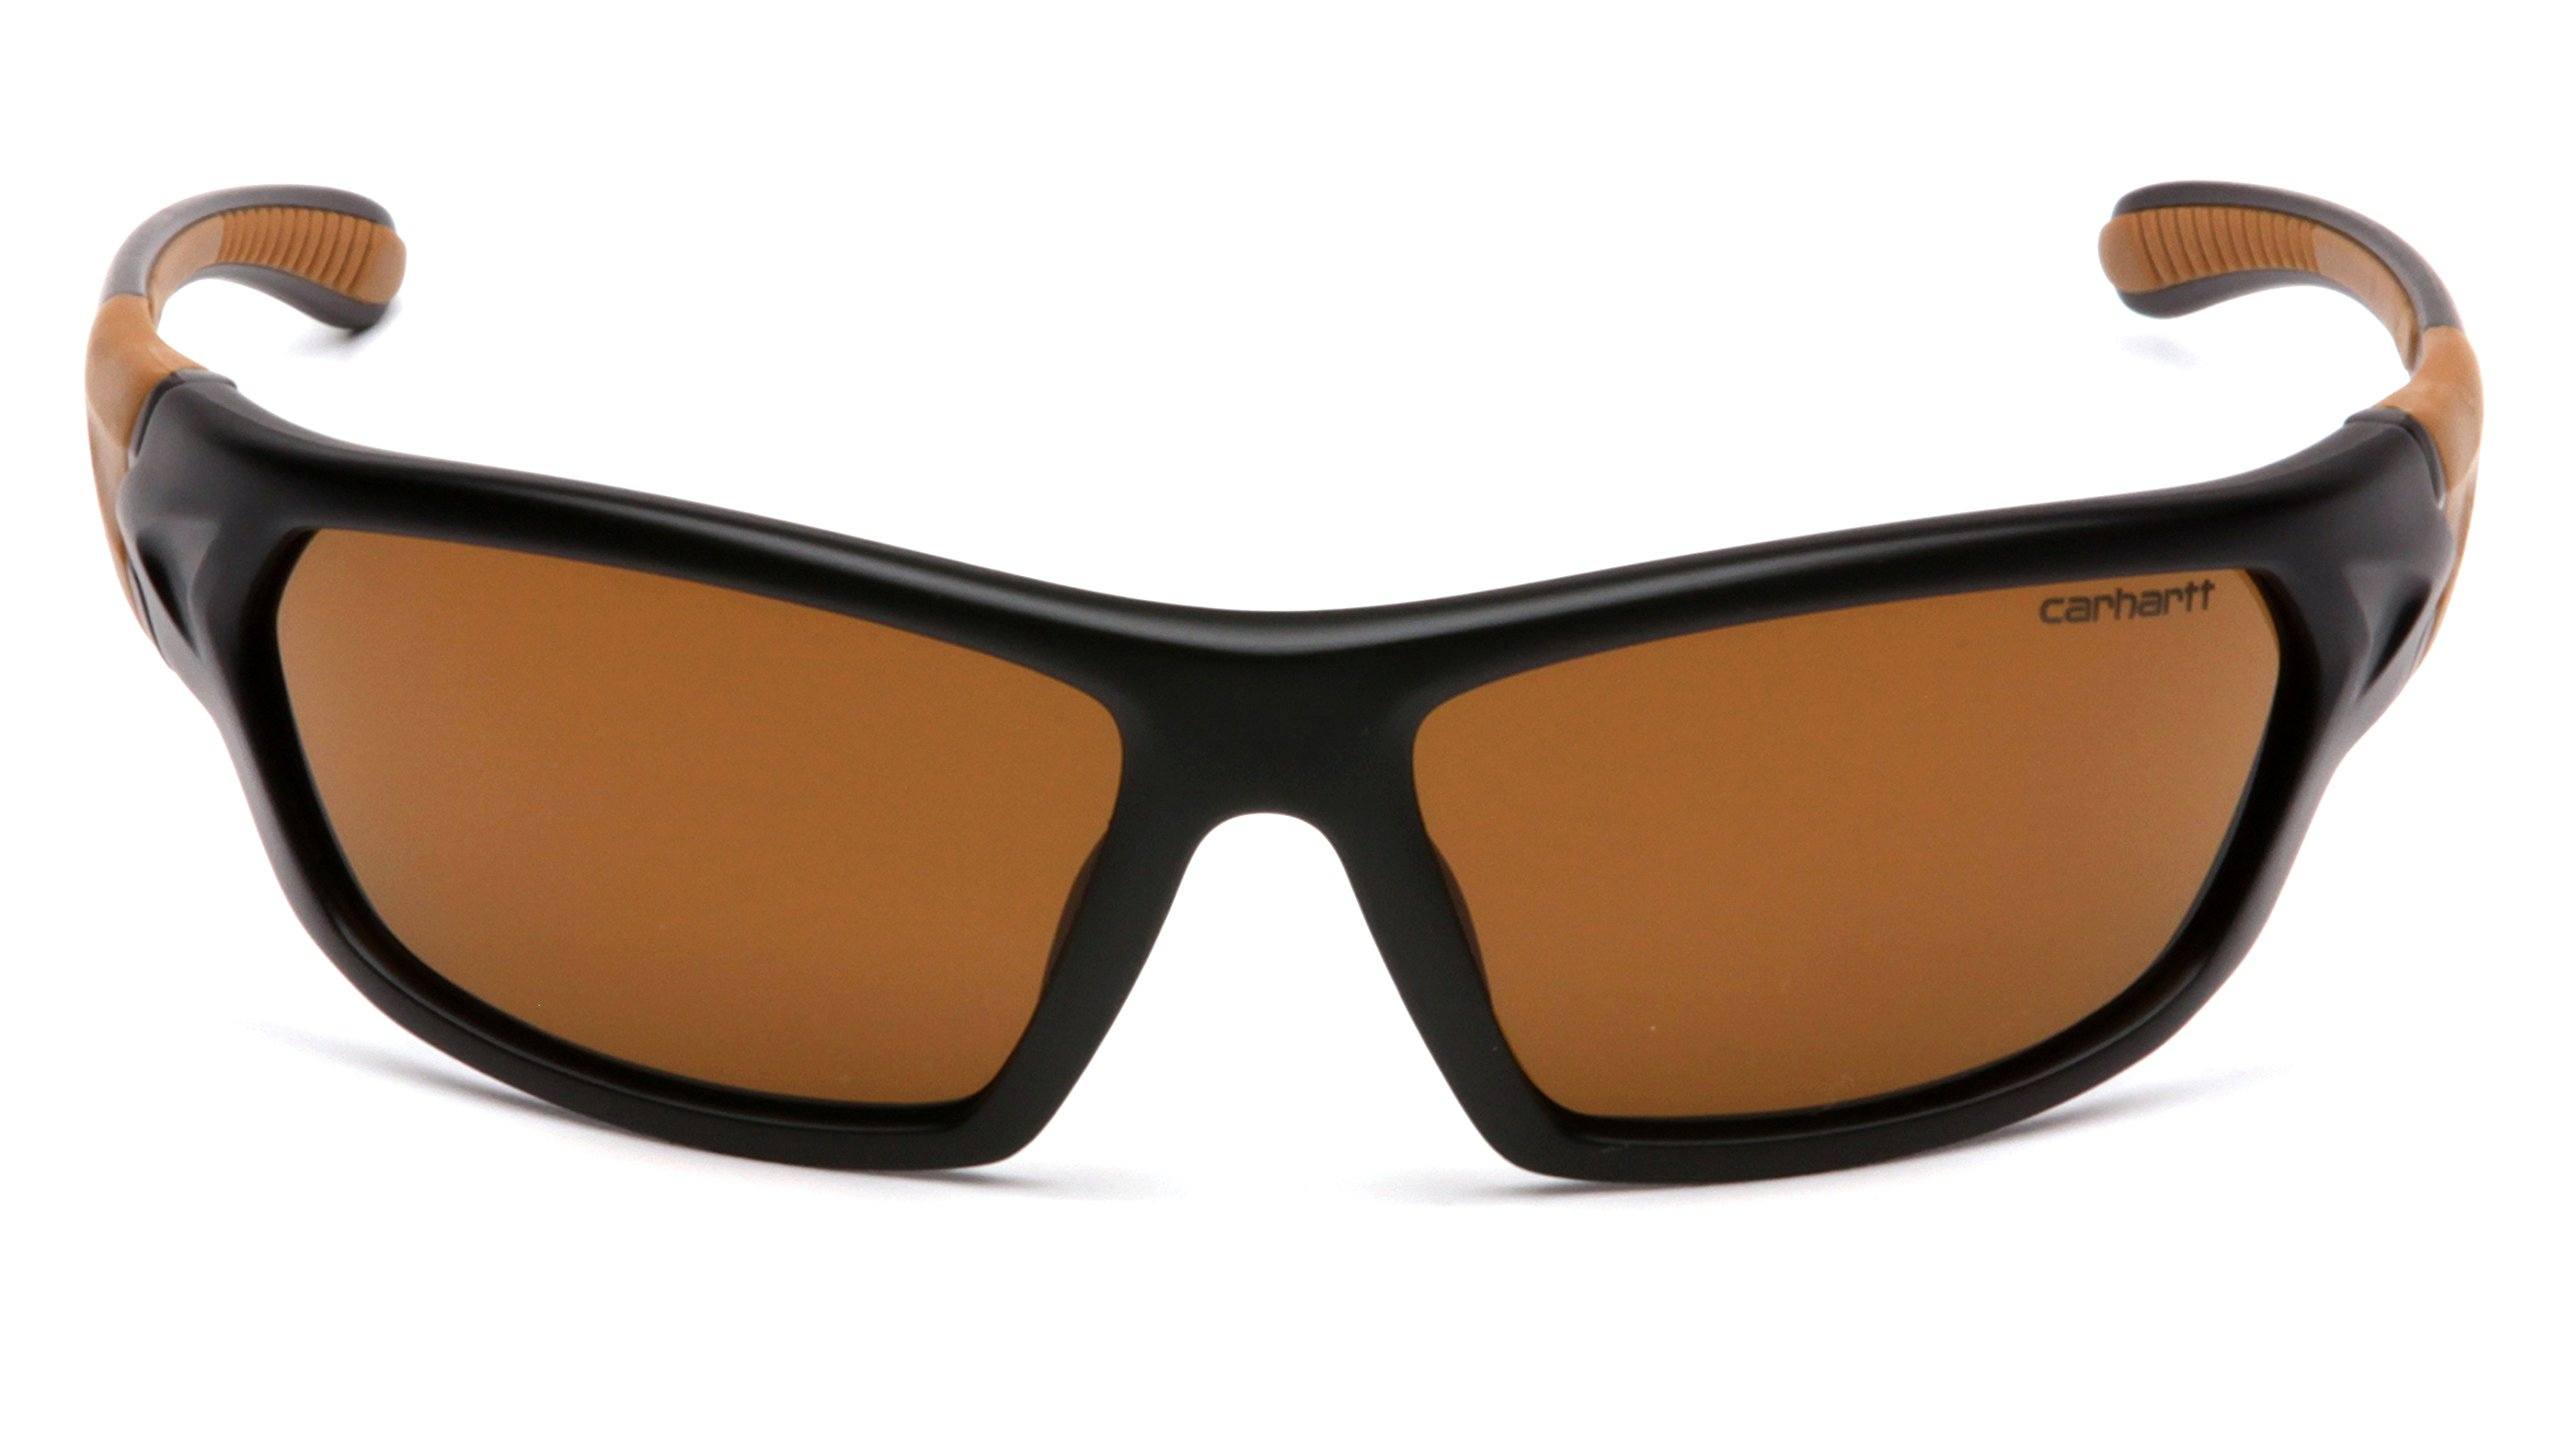 Carhartt Carbondale Safety Sunglasses with Sandstone Bronze Lens by Carhartt (Image #2)